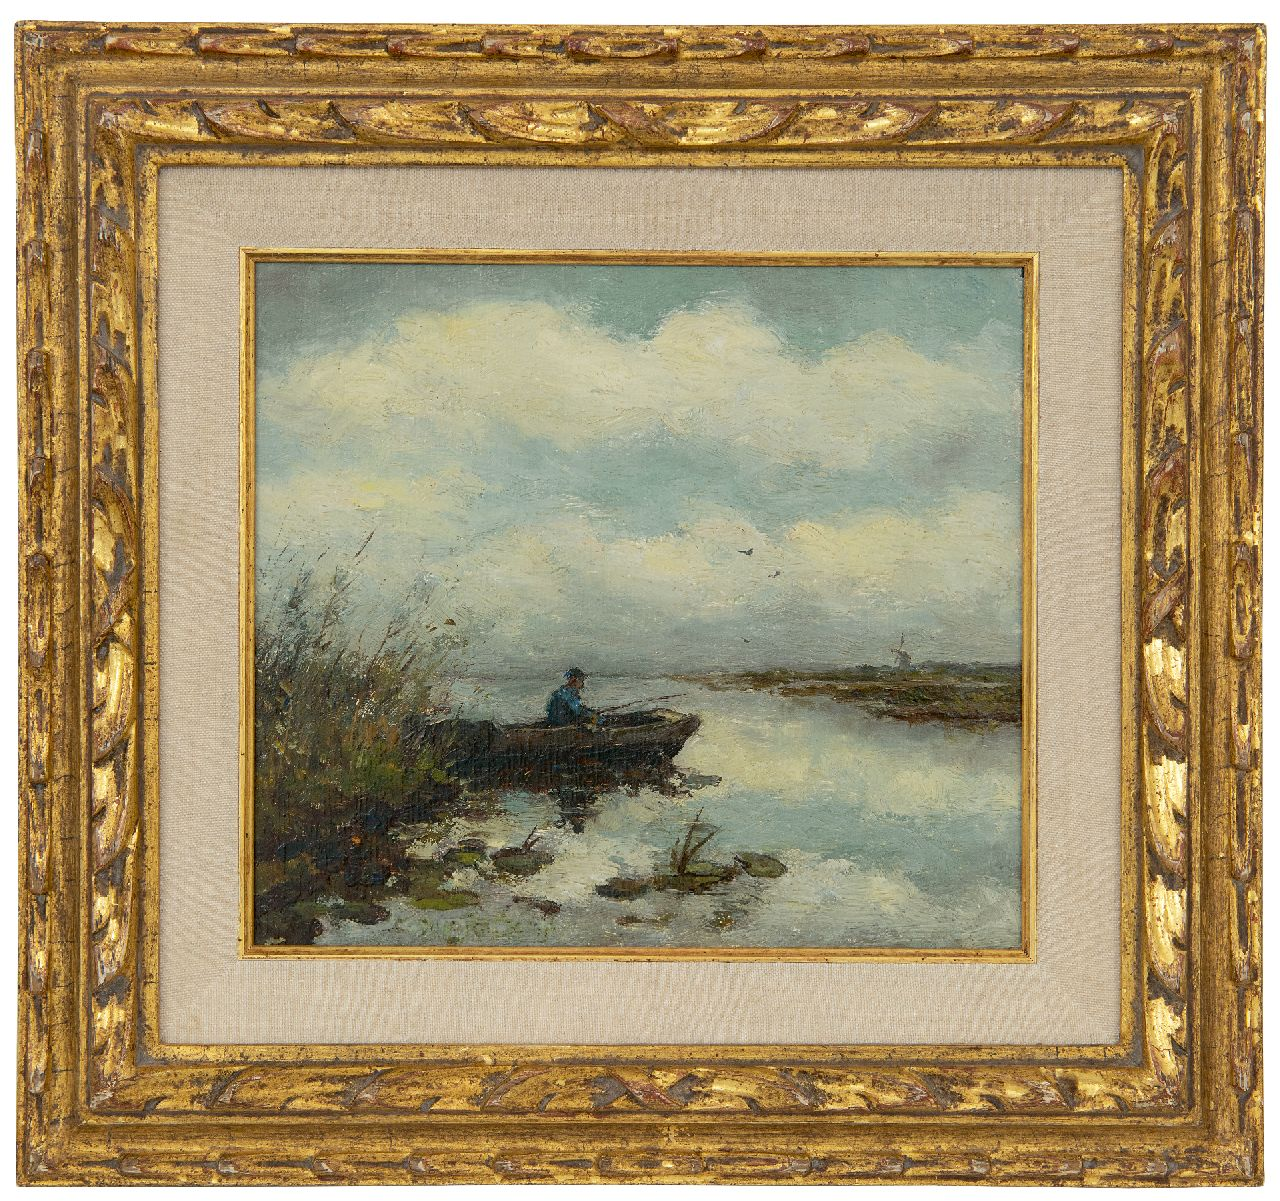 Weissenbruch H.J.  | Hendrik Johannes 'J.H.' Weissenbruch | Paintings offered for sale | A fisherman in a barge in a polder landscape, oil on panel 16.2 x 18.2 cm, signed traces of signature c.l.